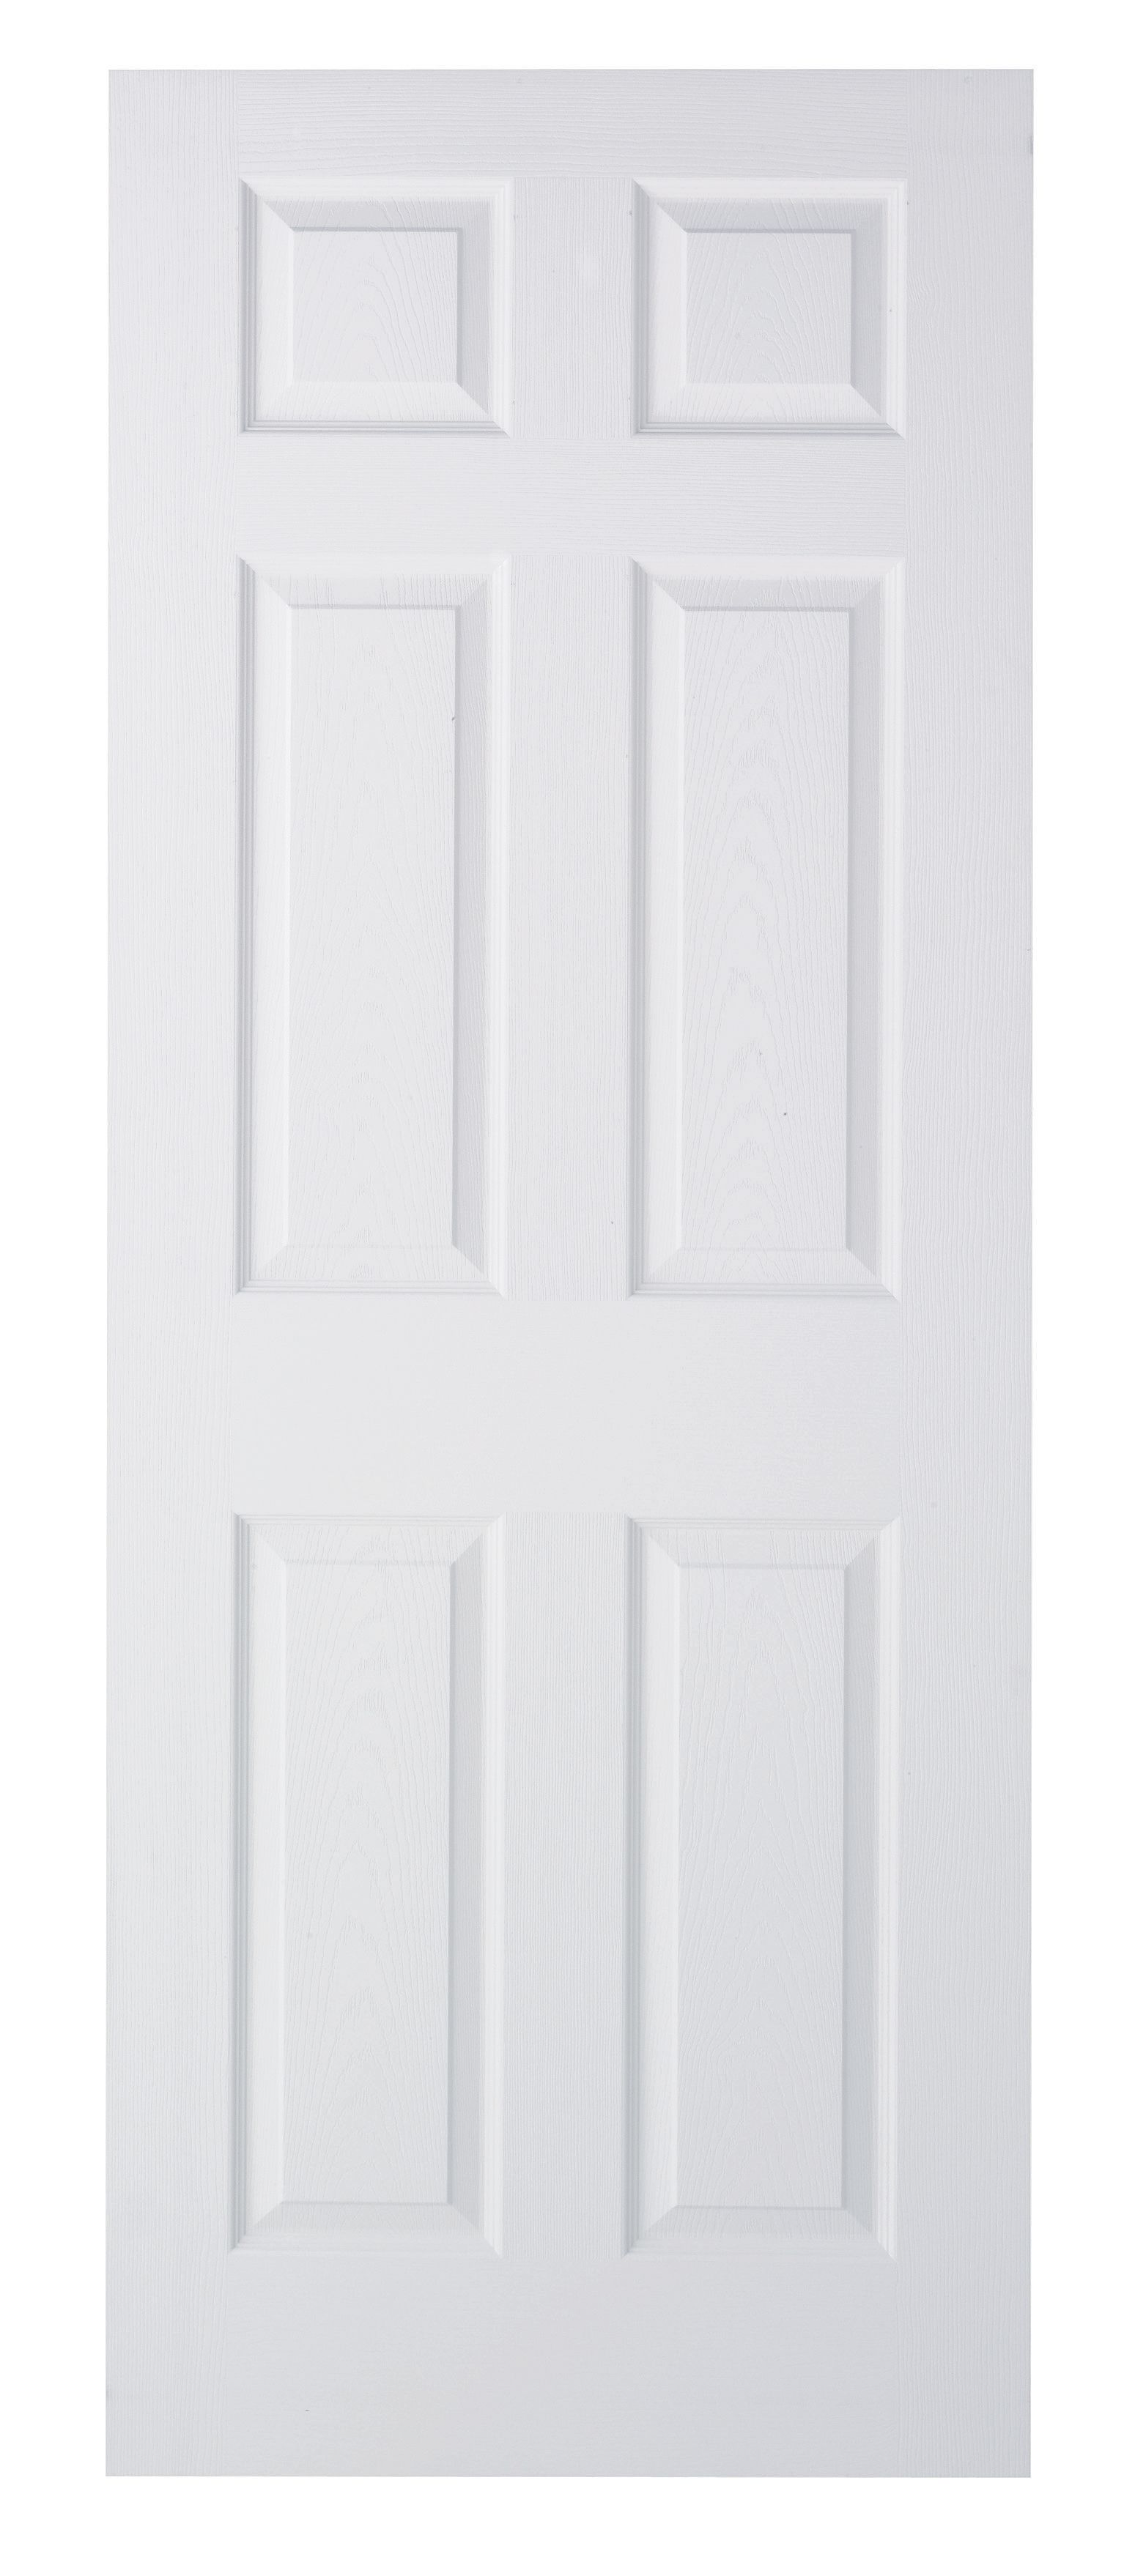 Wickes Woburn White Grained Moulded 6 Panel Internal Door   1981mm X 762mm by Wickes